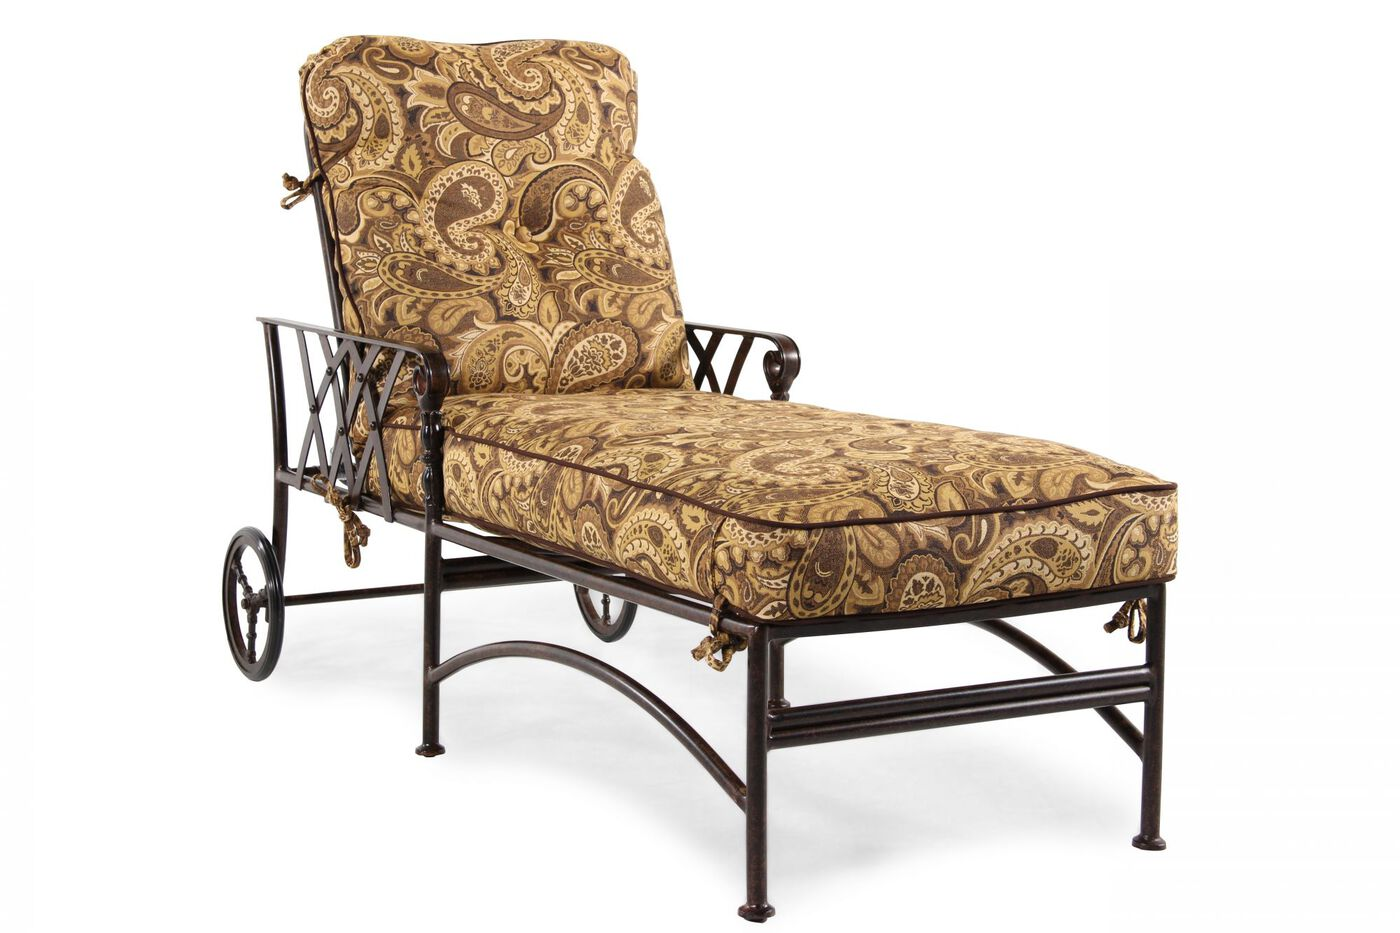 Mathis brothers patio furniture agio patio table agio for Agio heritage chaise lounge